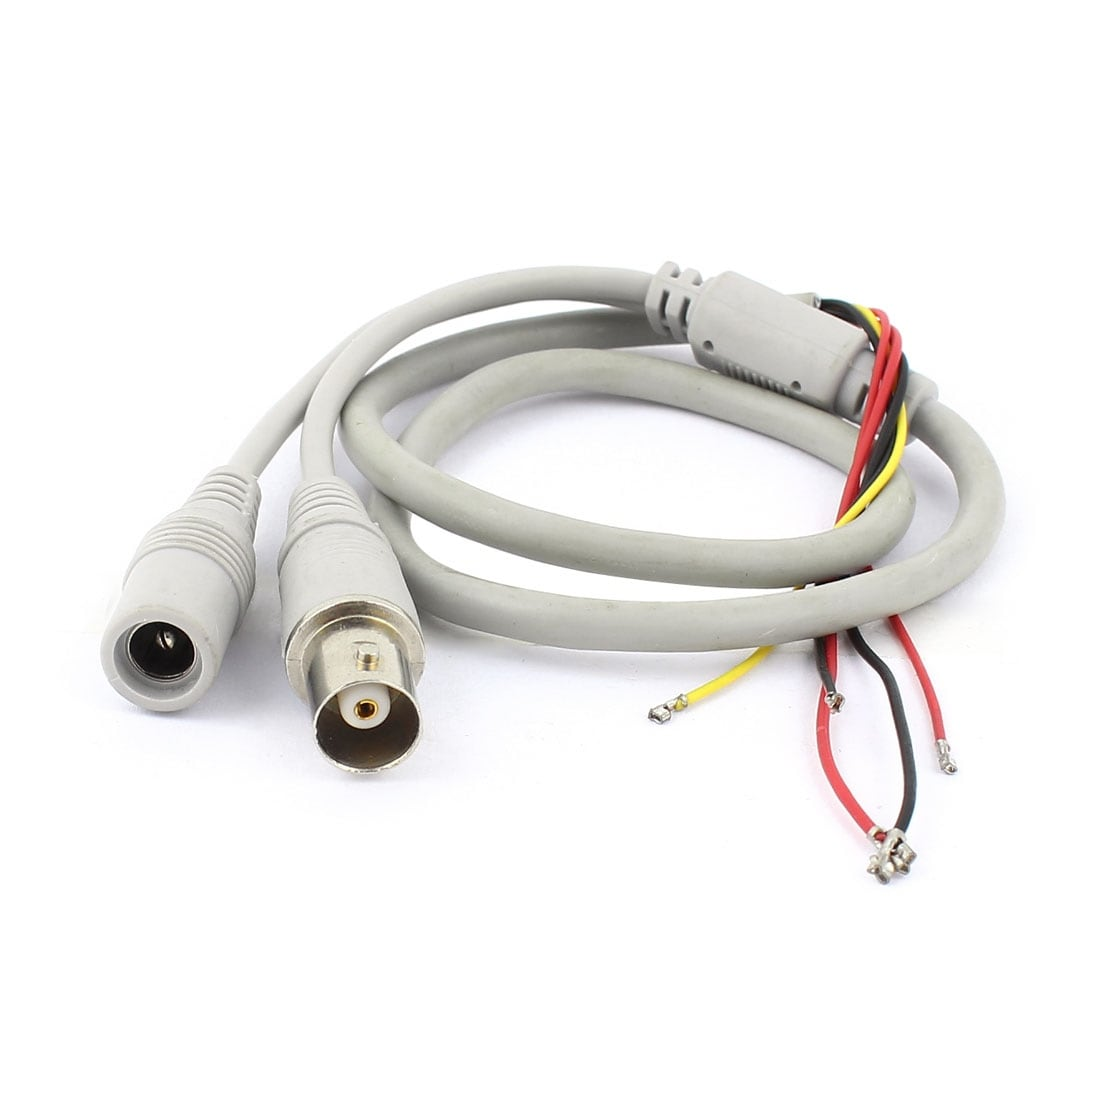 hight resolution of shop unique bargains female bnc 5 5x2 1mm dc power jack to 5 wire cctv camera power cable gray free shipping on orders over 45 overstock 18249172